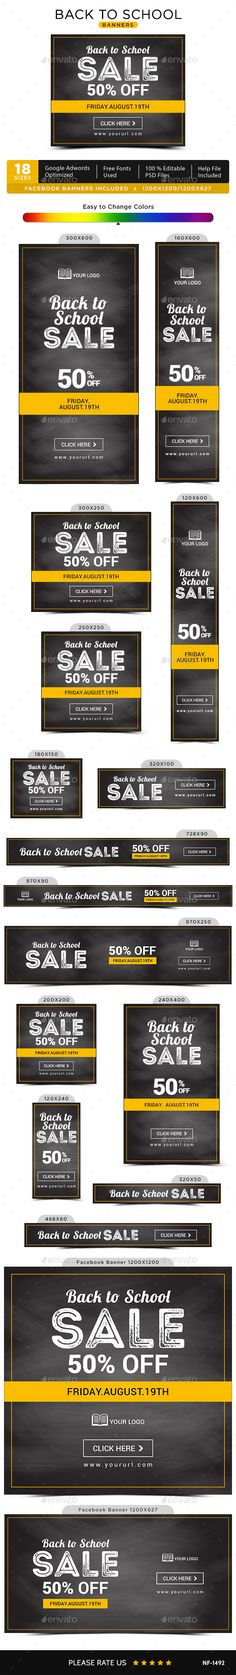 Back to School Sale Banners Template PSD. Download here: https://graphicriver.net/item/back-to-school-sale-banners/17473915?ref=ksioks